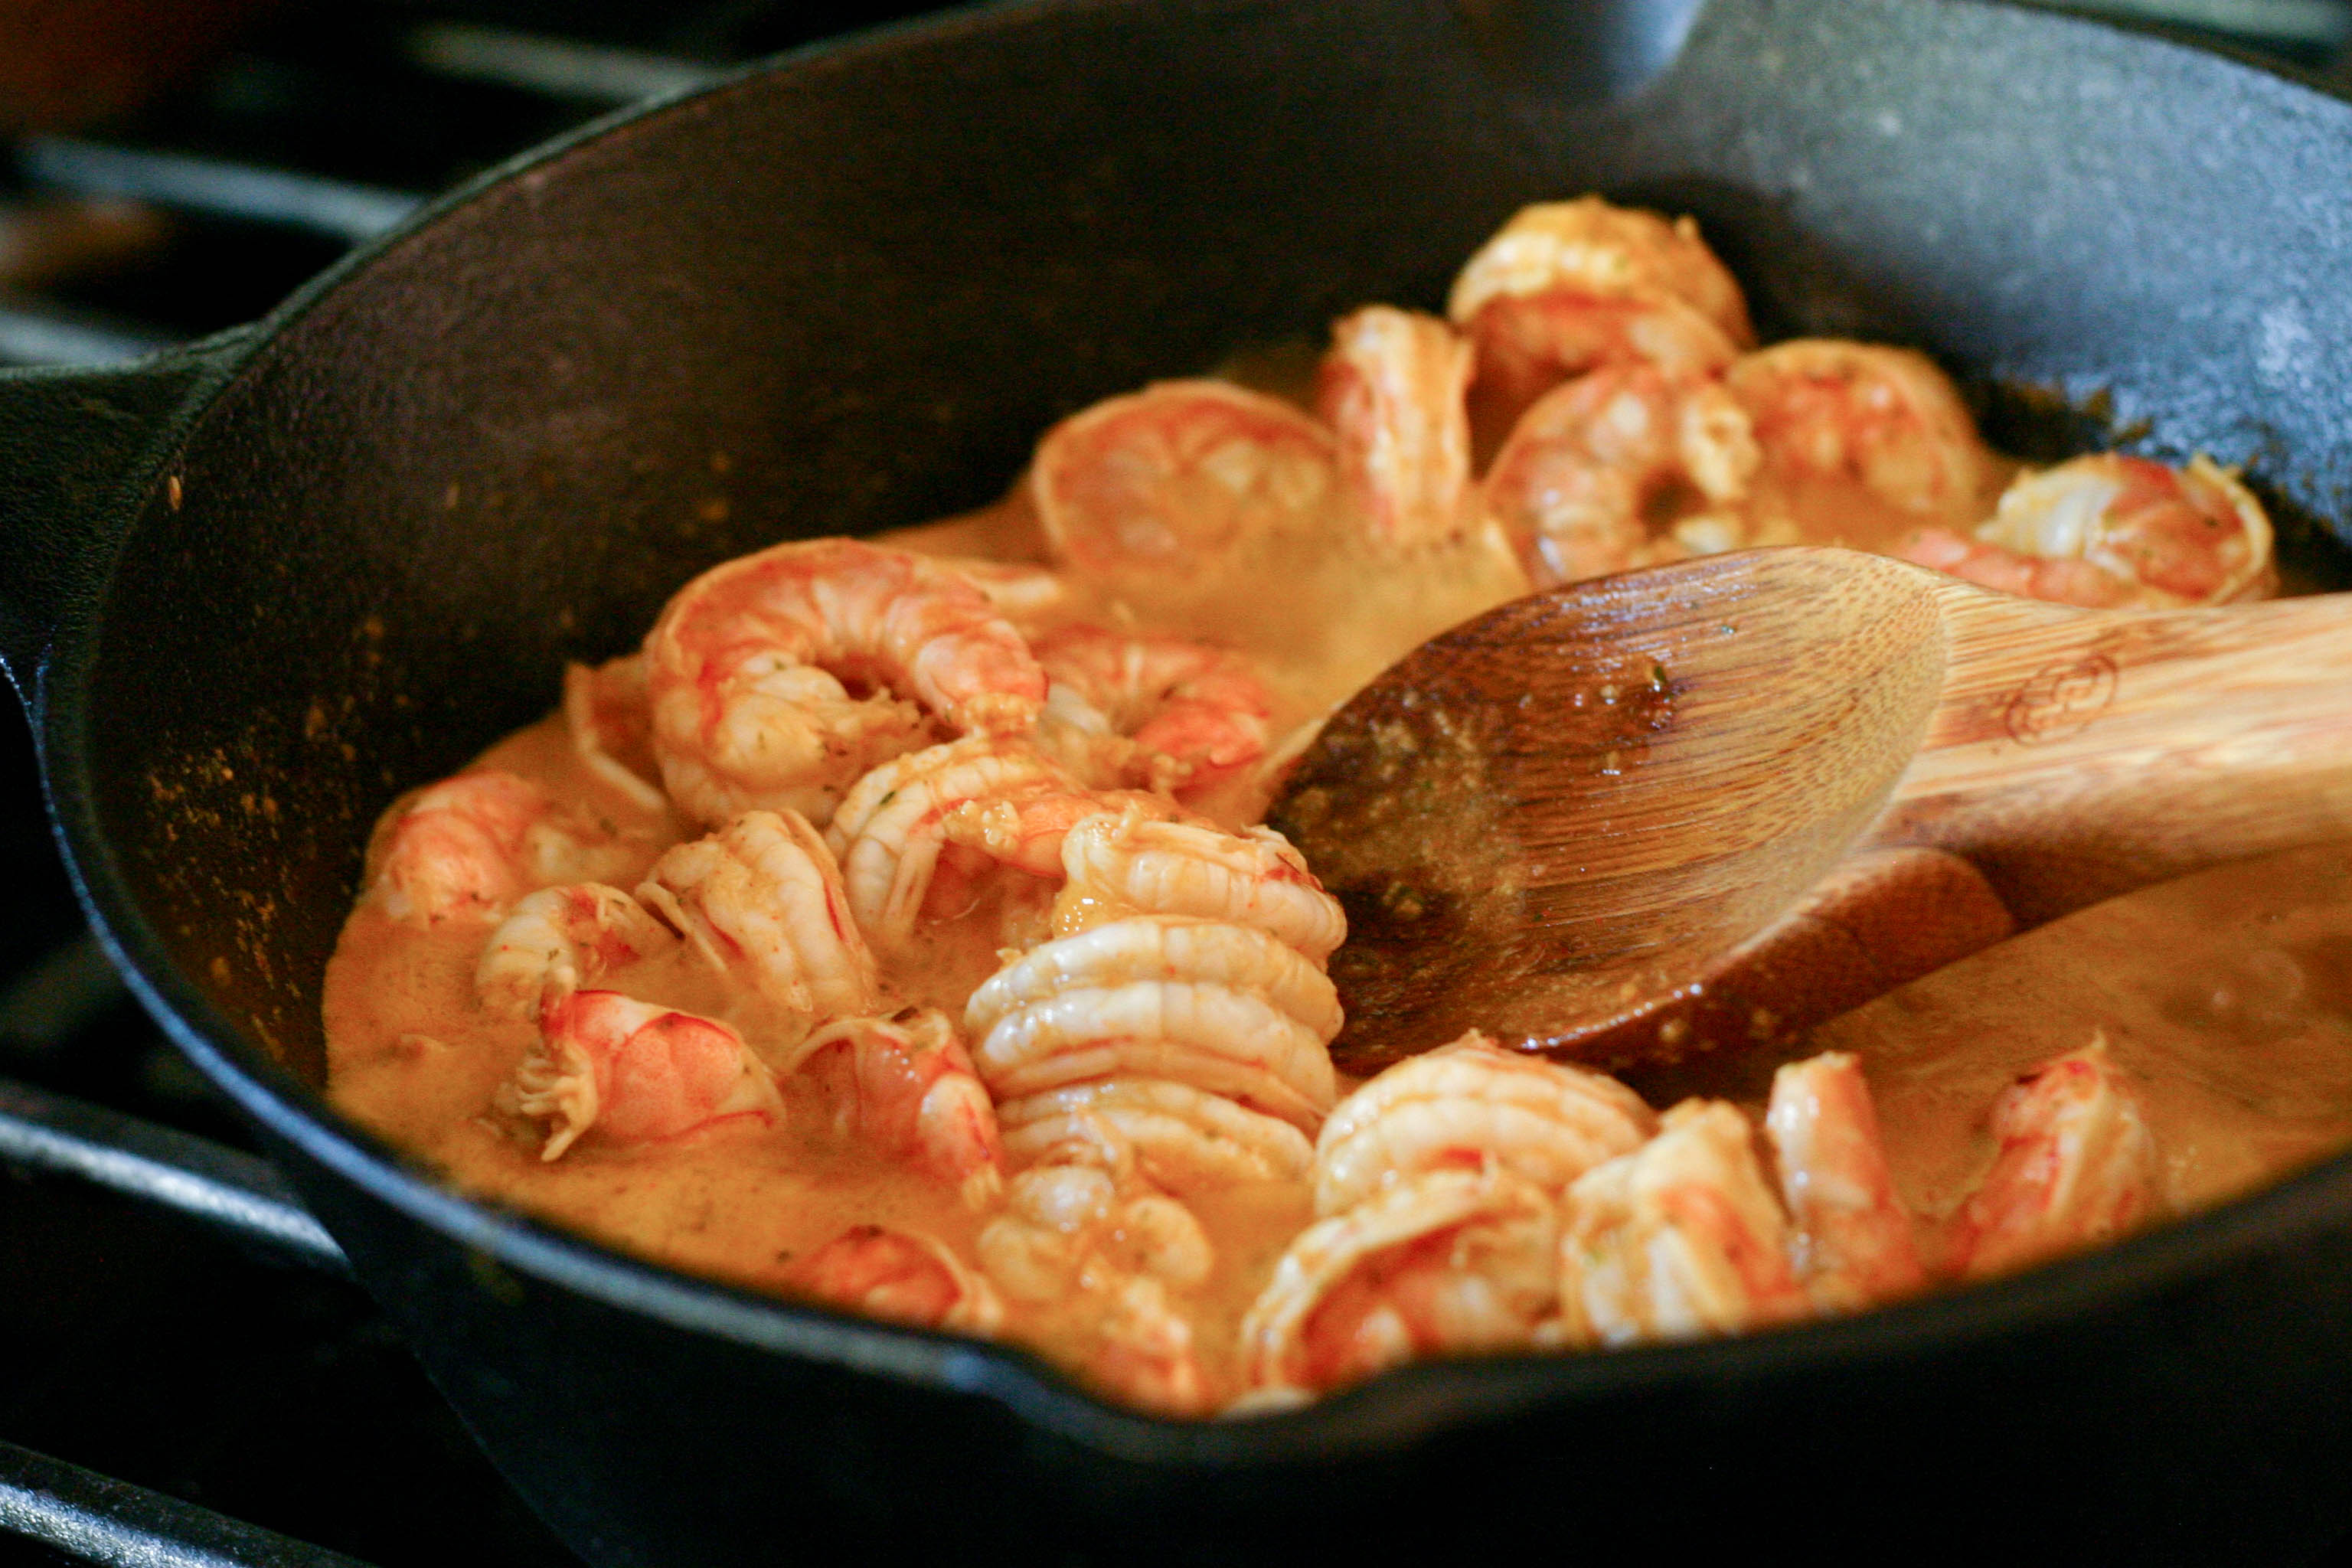 We served the piri piri shrimp over white rice and garnished it with ...